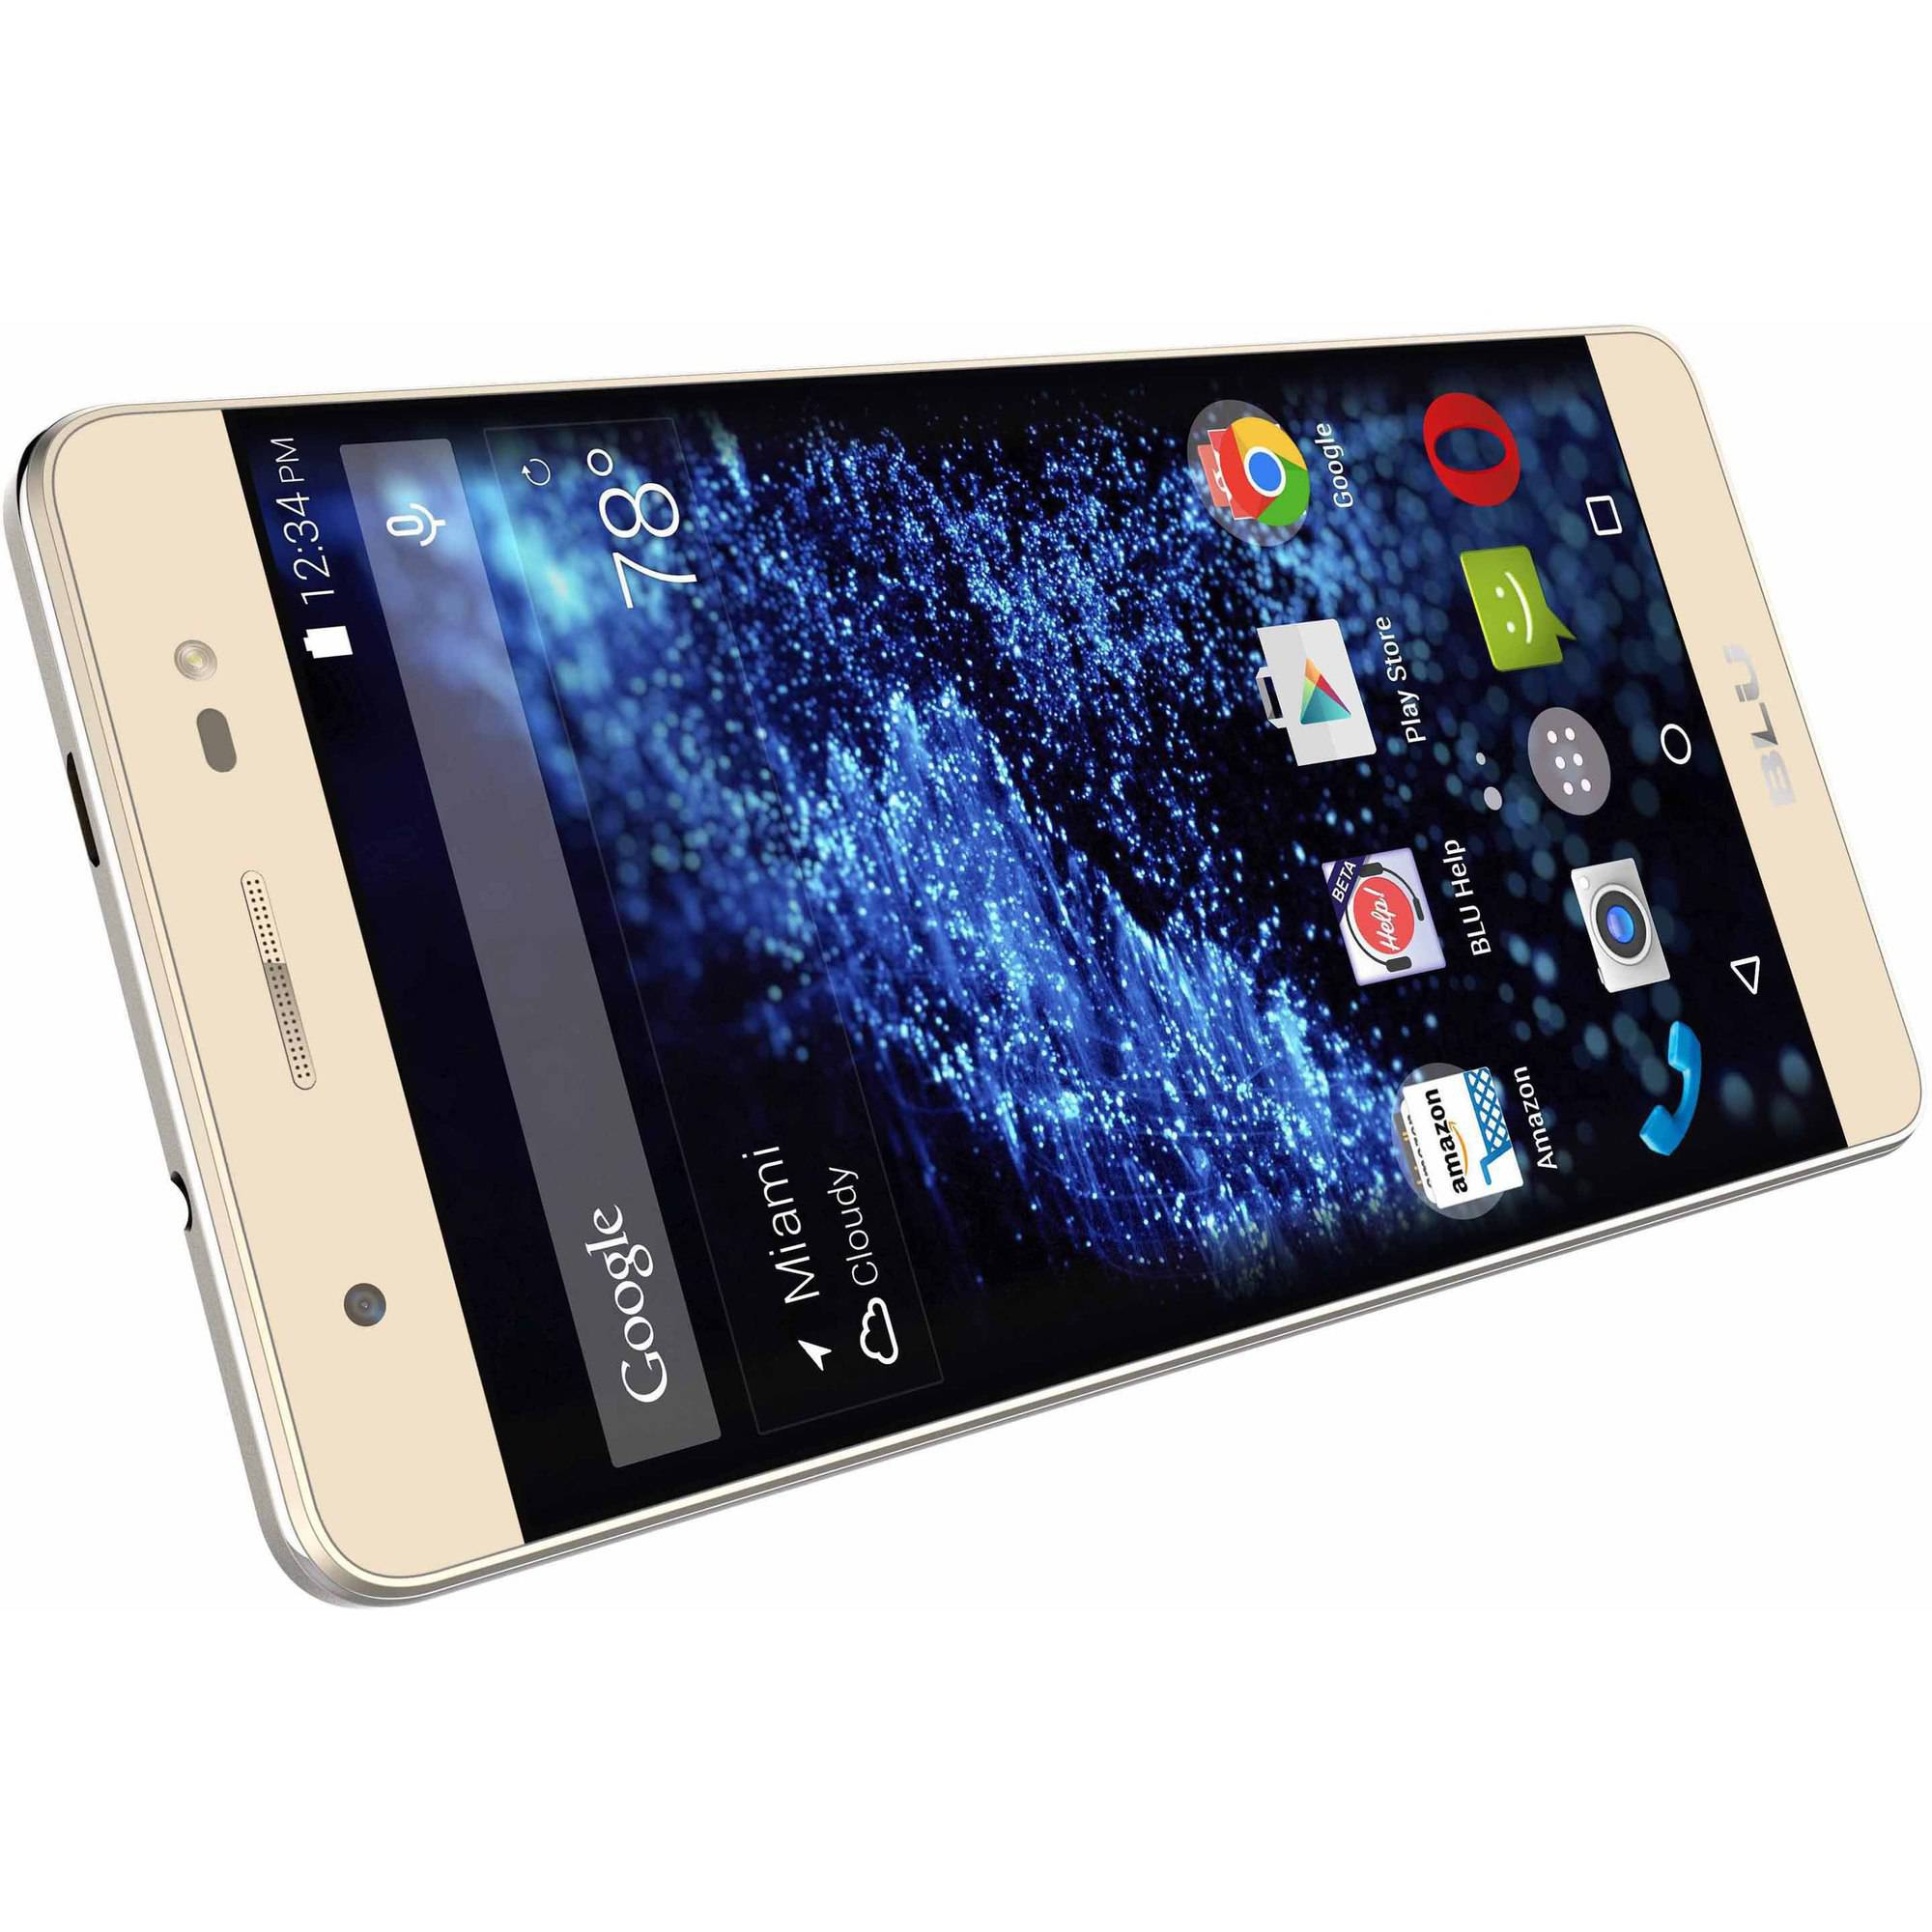 Unlocked Gsm Android Phones Ebay Limisee Over Blog Com